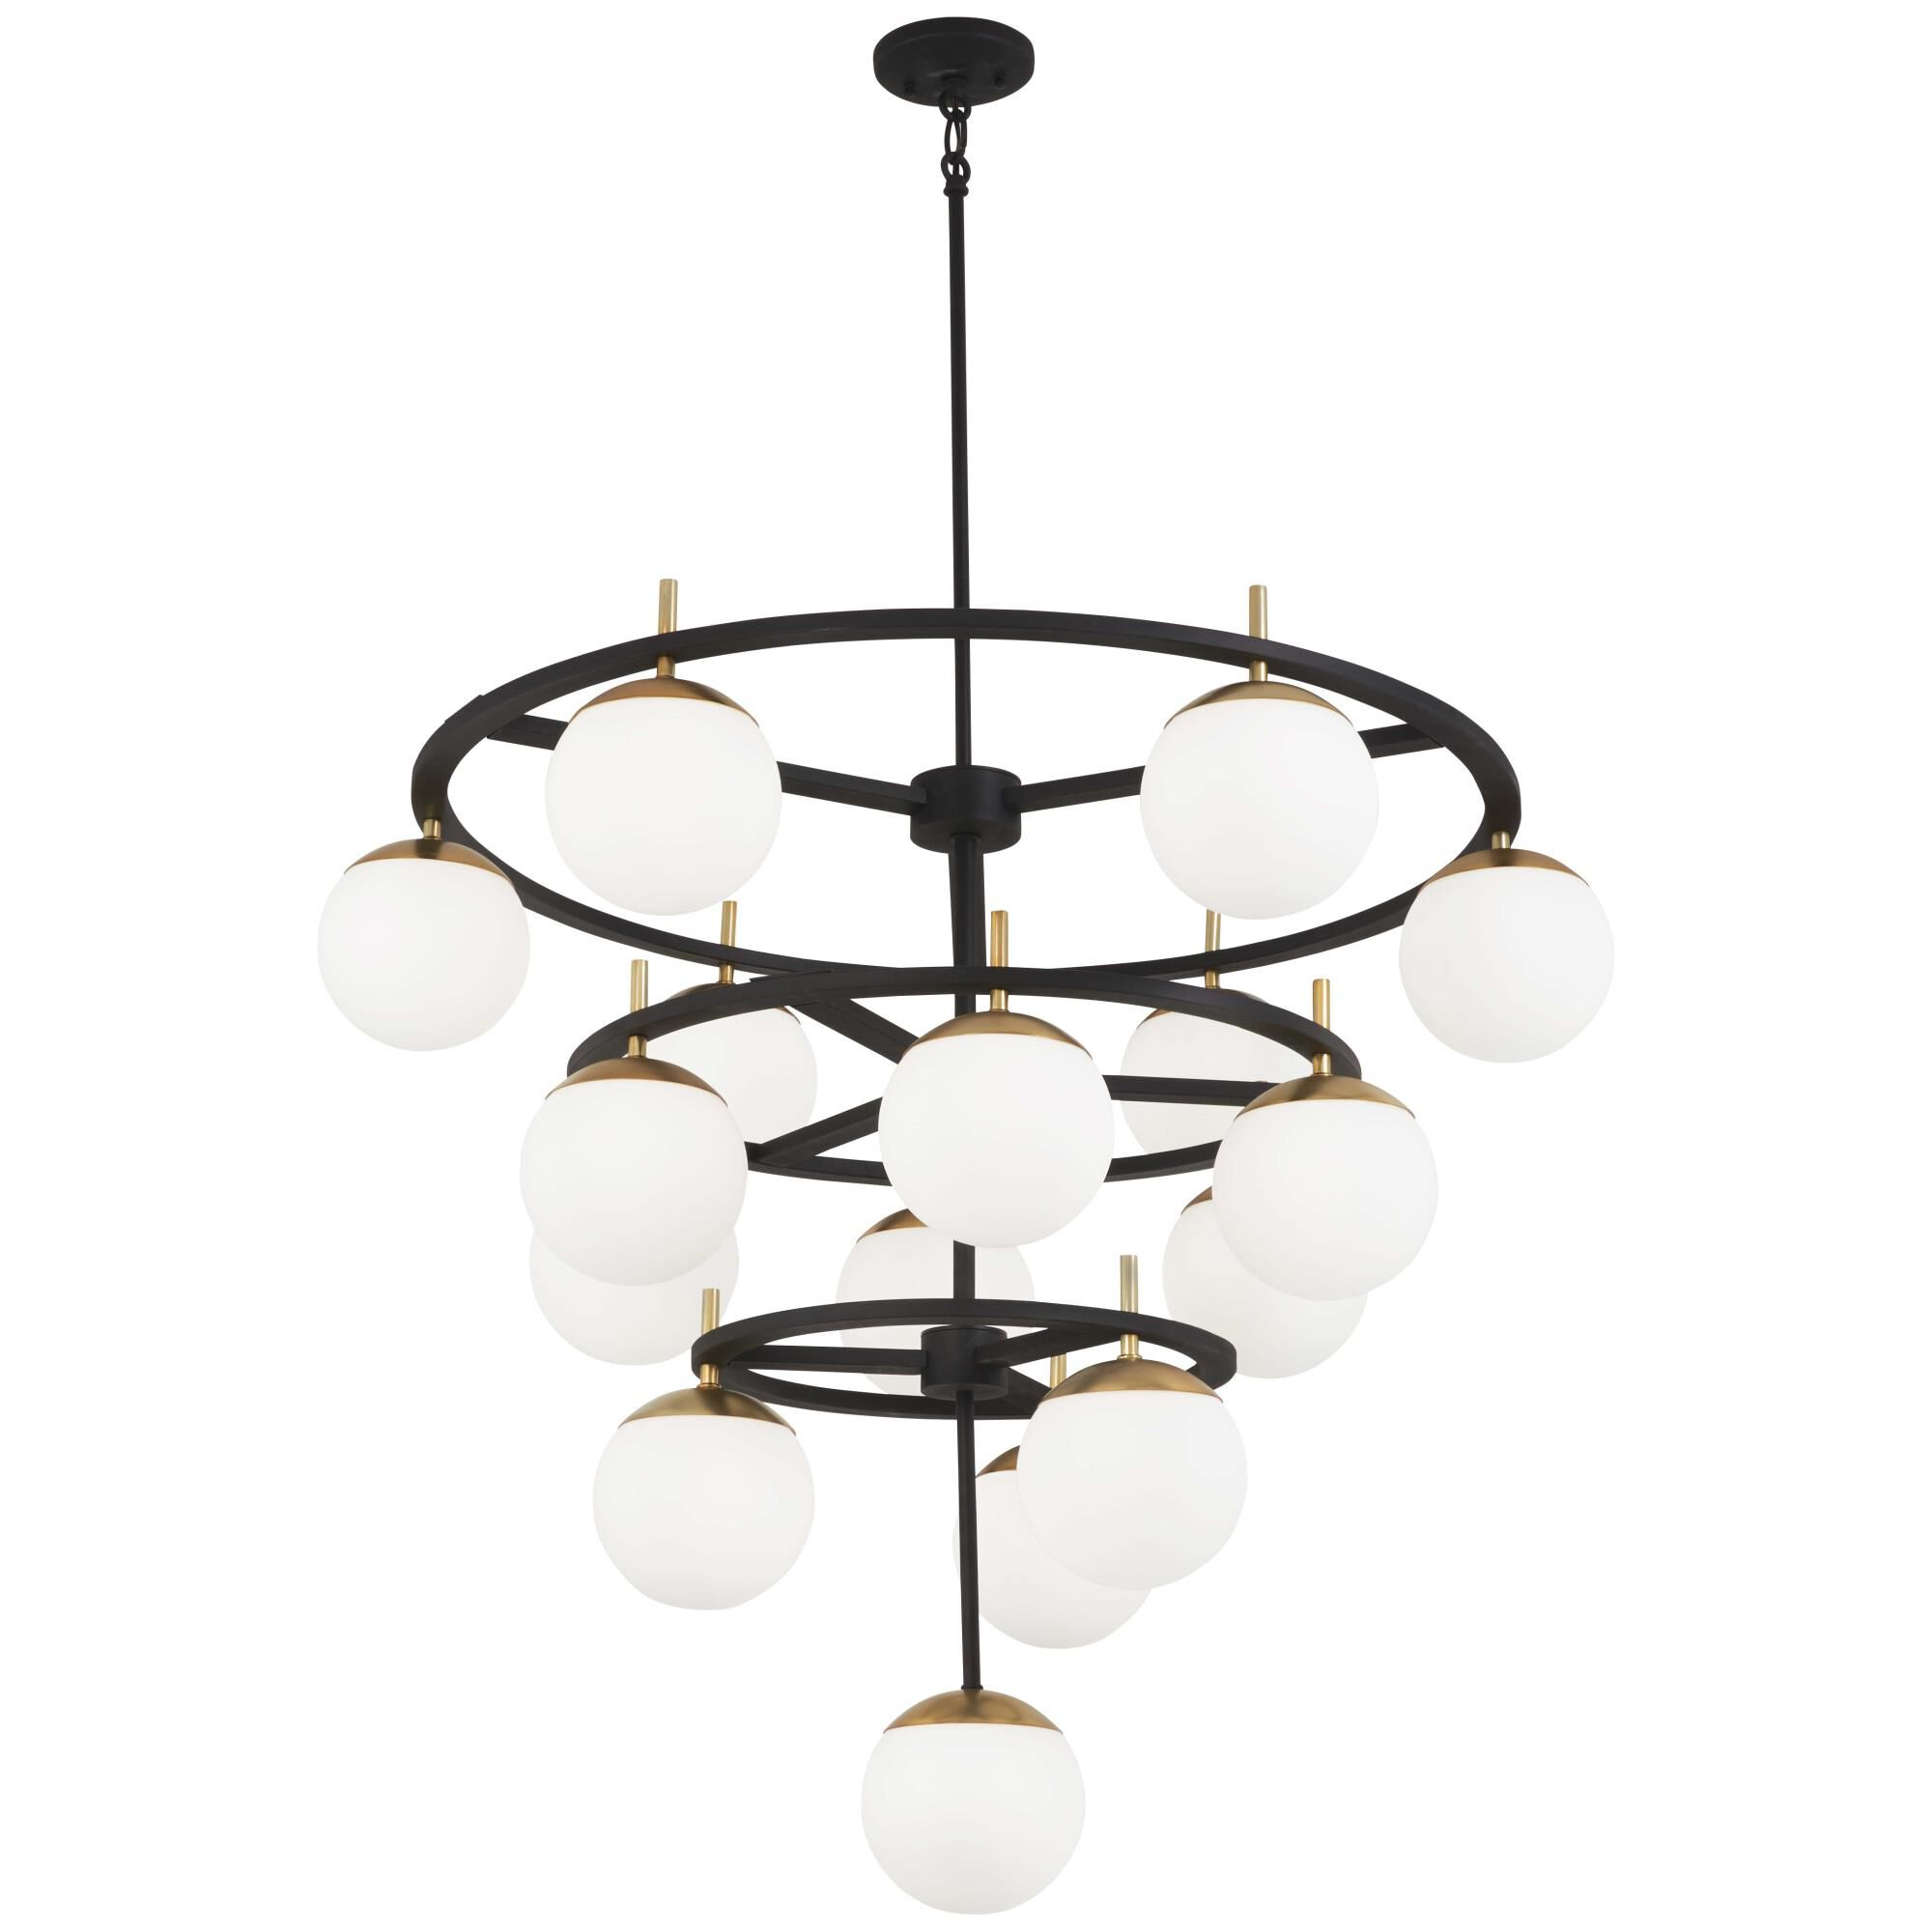 Kovacs Alluria 36 Inch 16 Light Chandelier Alluria - P1359-618 - Transitional